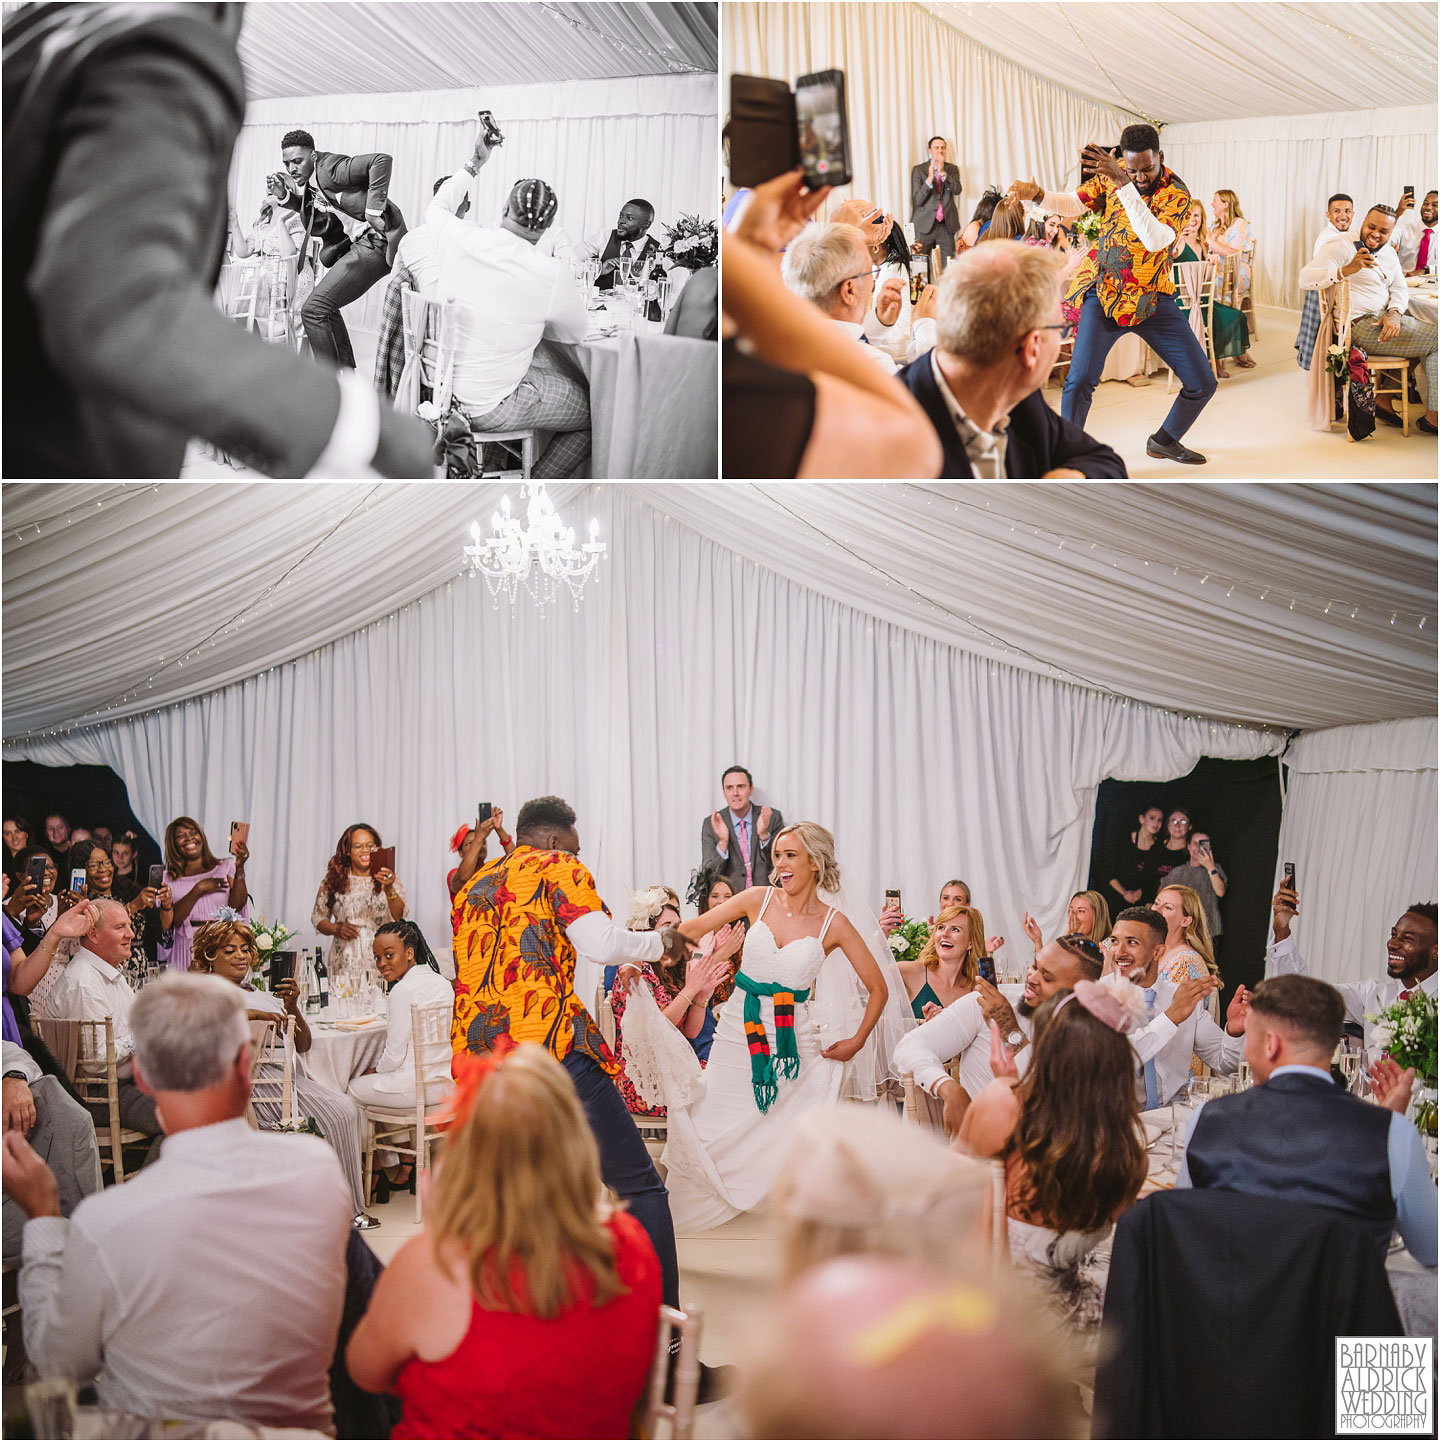 Amazing entrance of the bride and groom photos